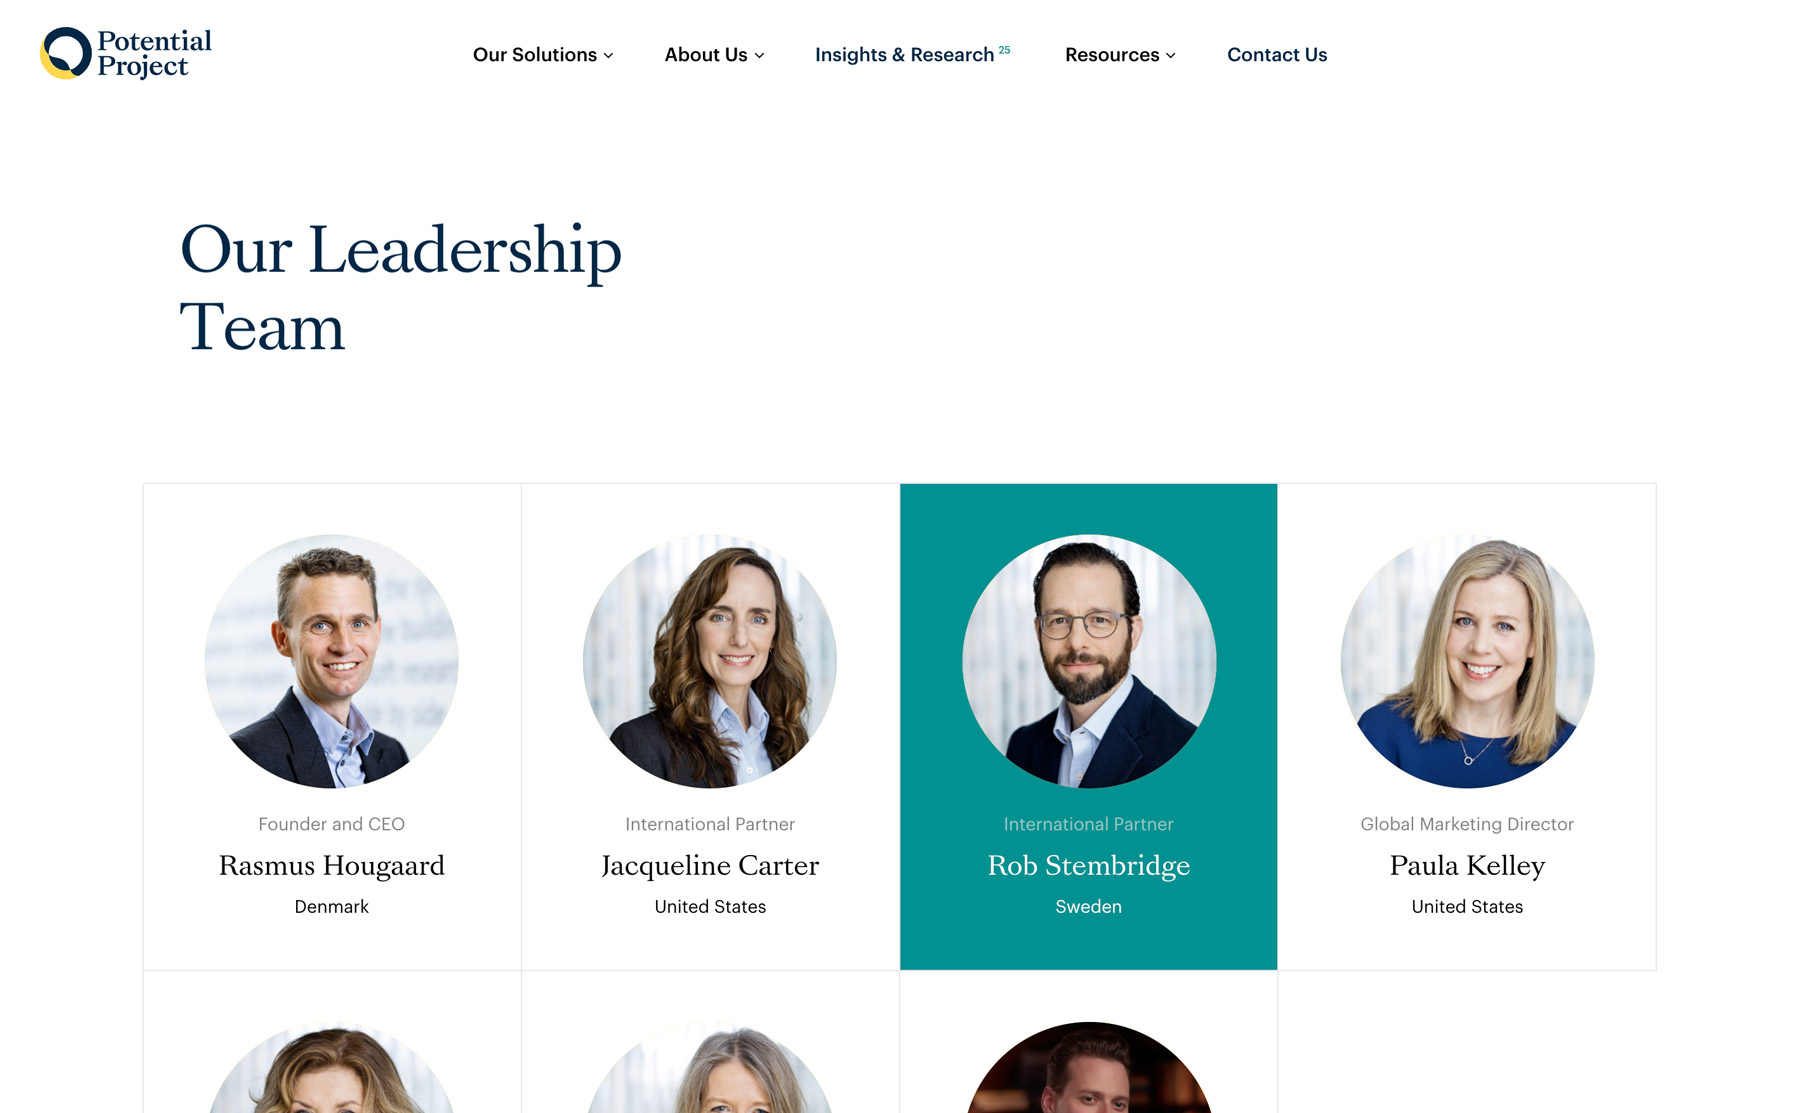 the new website that shows who their leadership team is